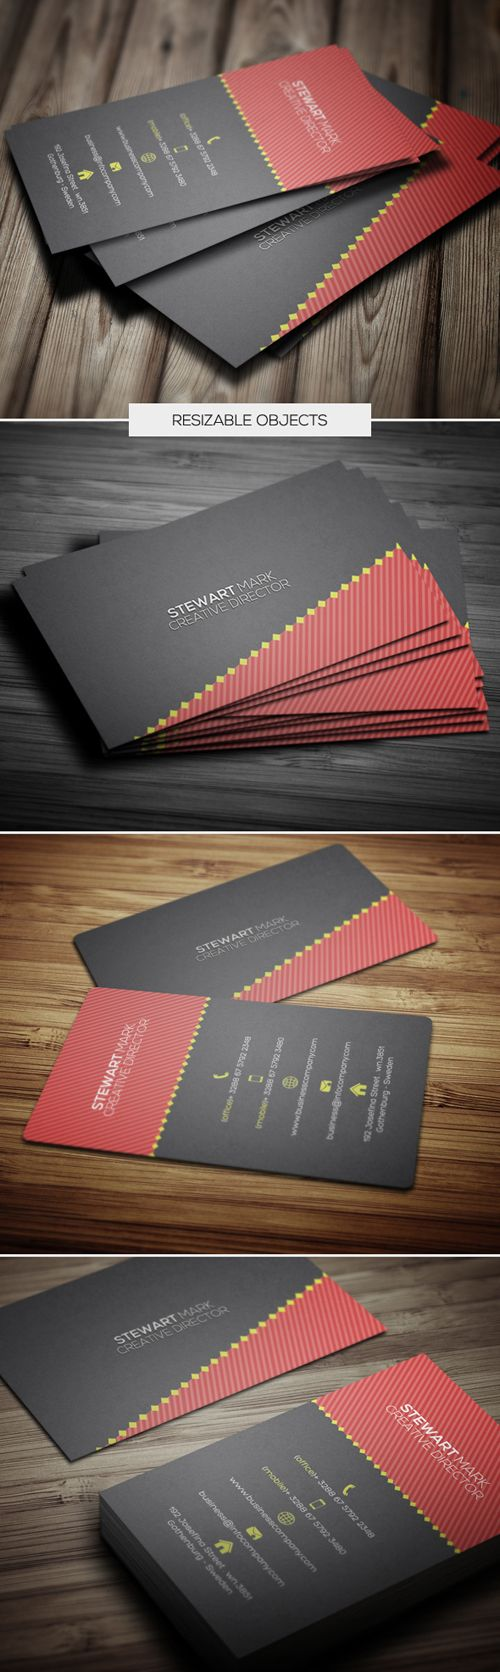 1676 best best business cards on pinterest images on pinterest want to learn how to create amazing business cards download for free the complete magicingreecefo Choice Image